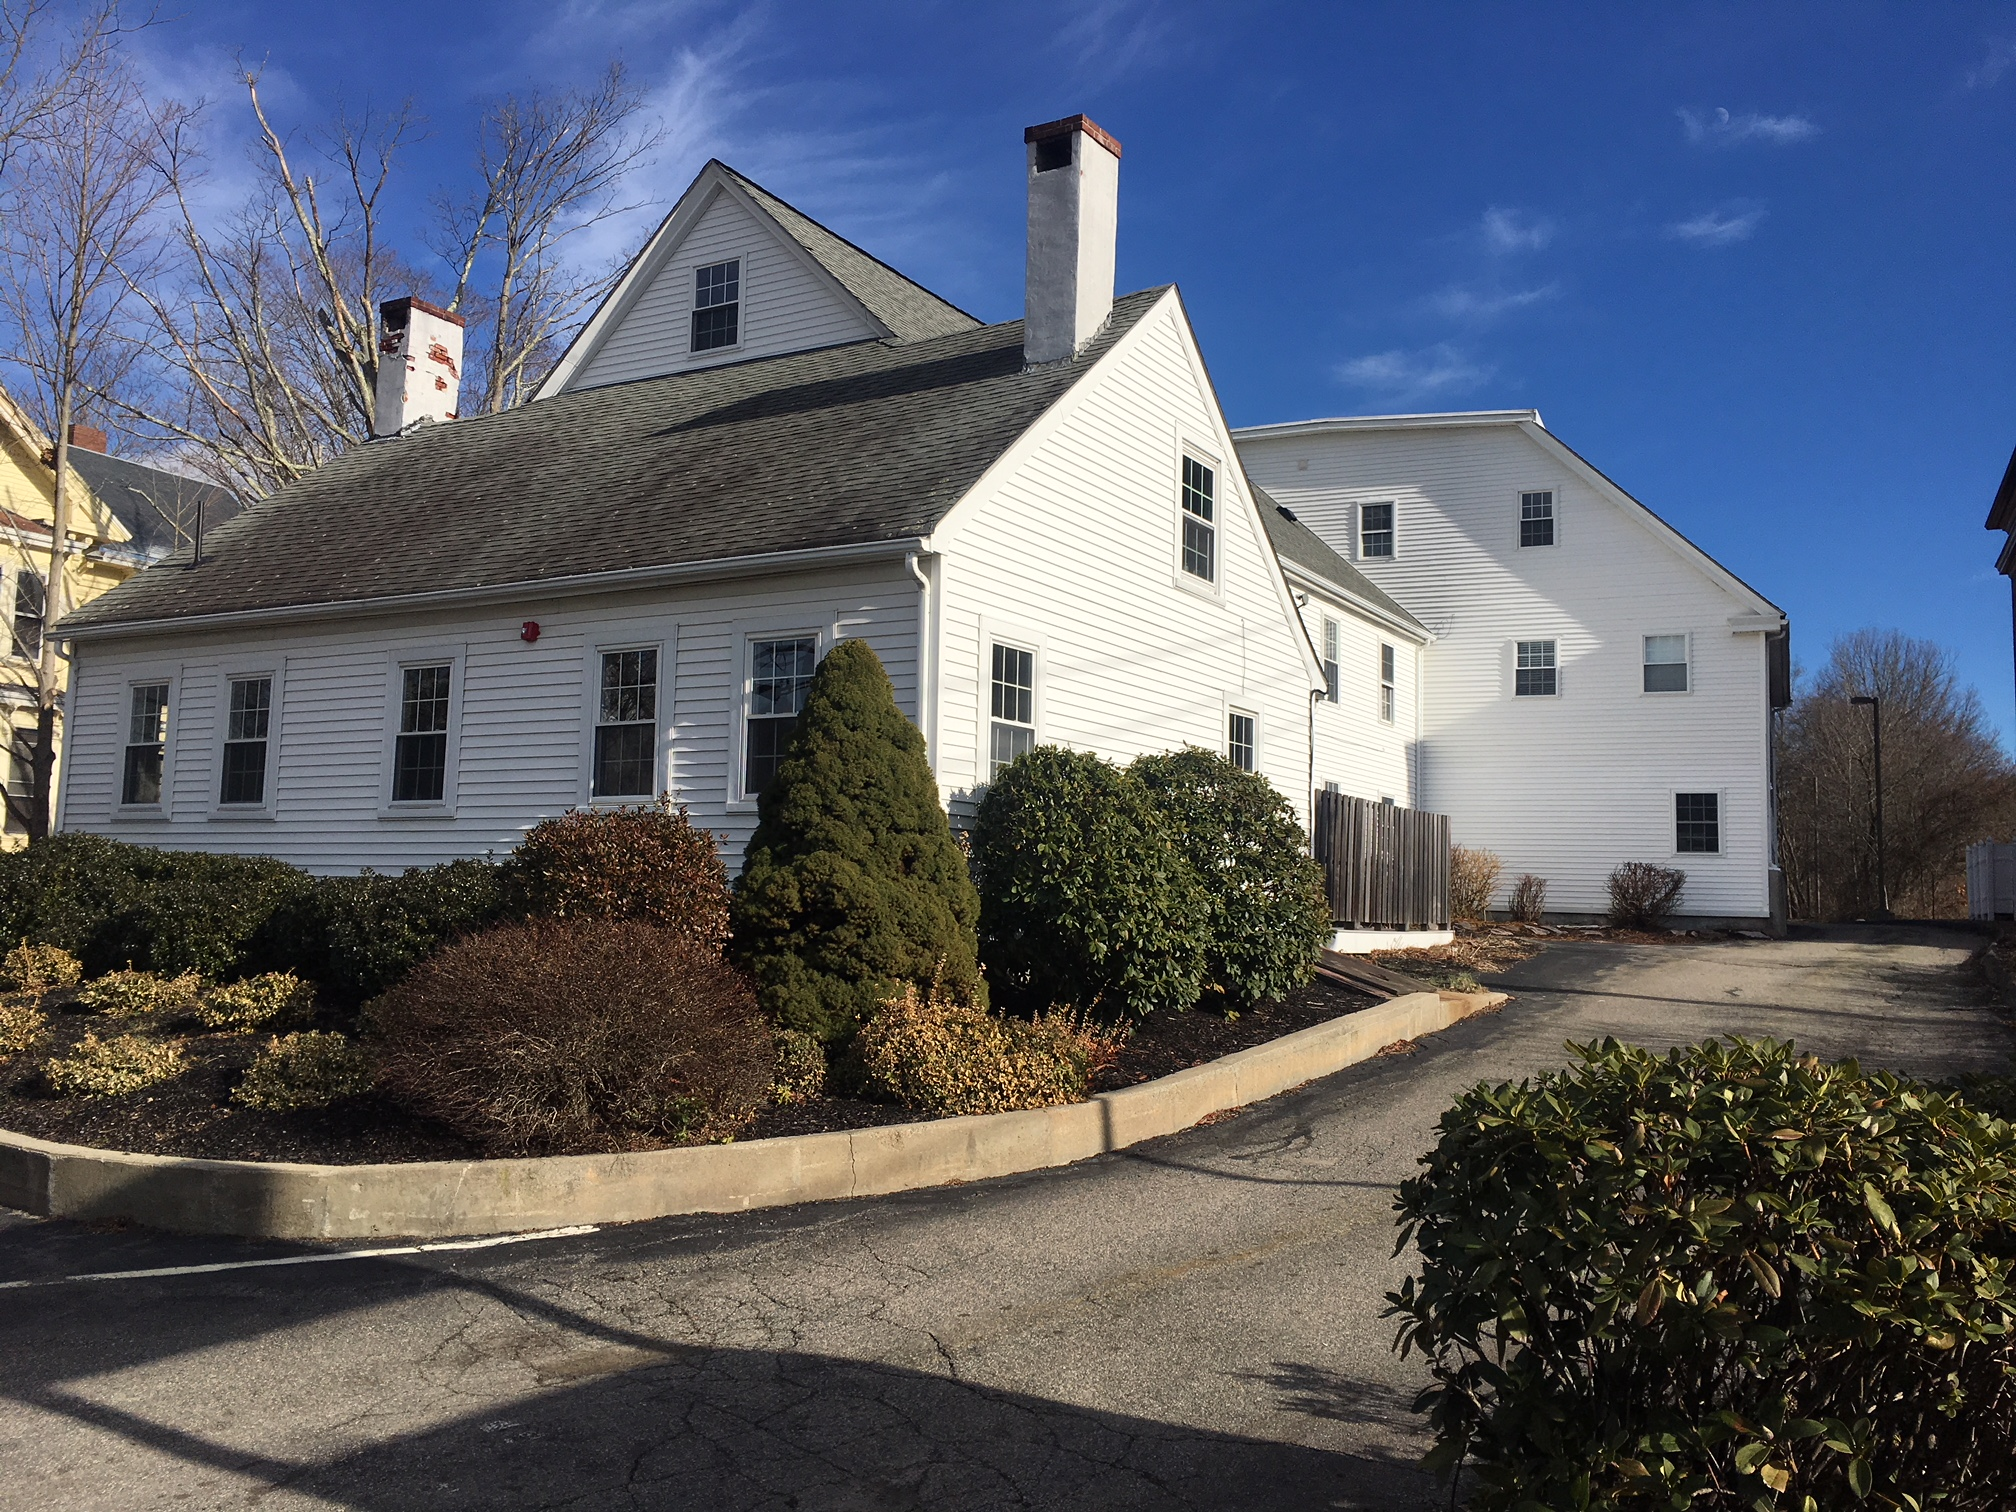 Here's the entrance to our office at 175 N Franklin St, Holbrook, MA